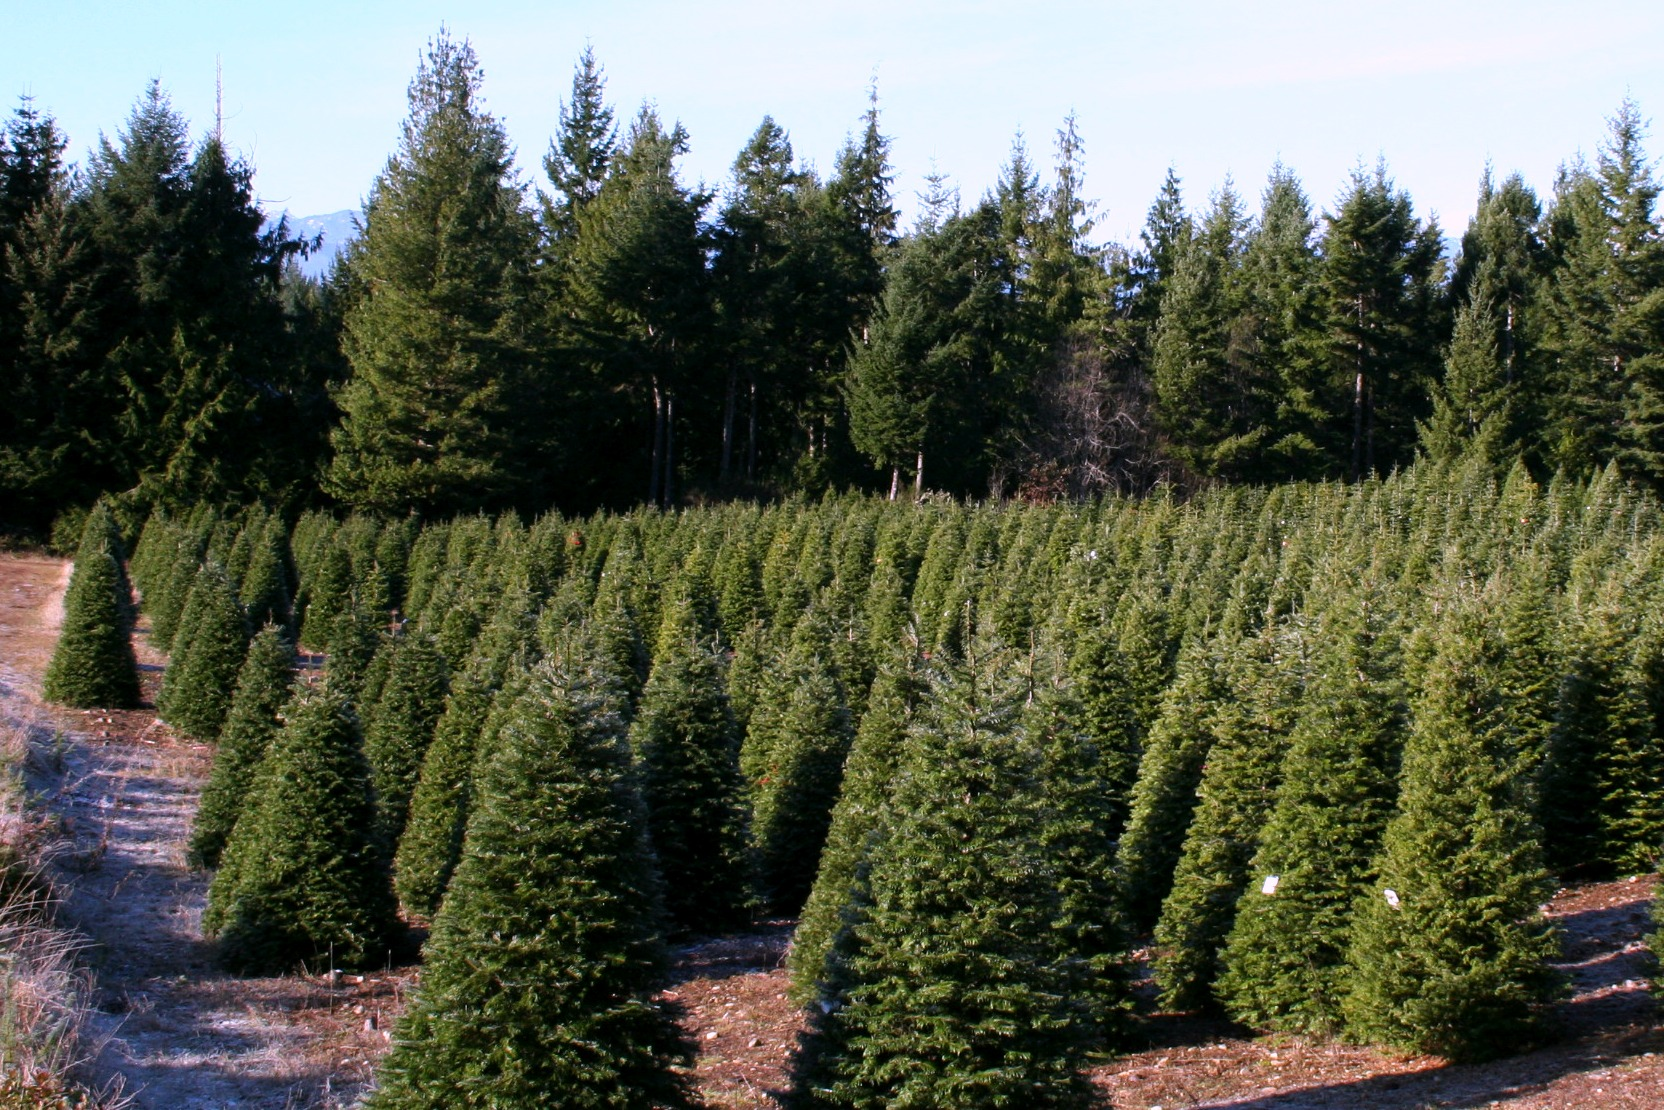 Christmas Tree Farm in Kitsap County